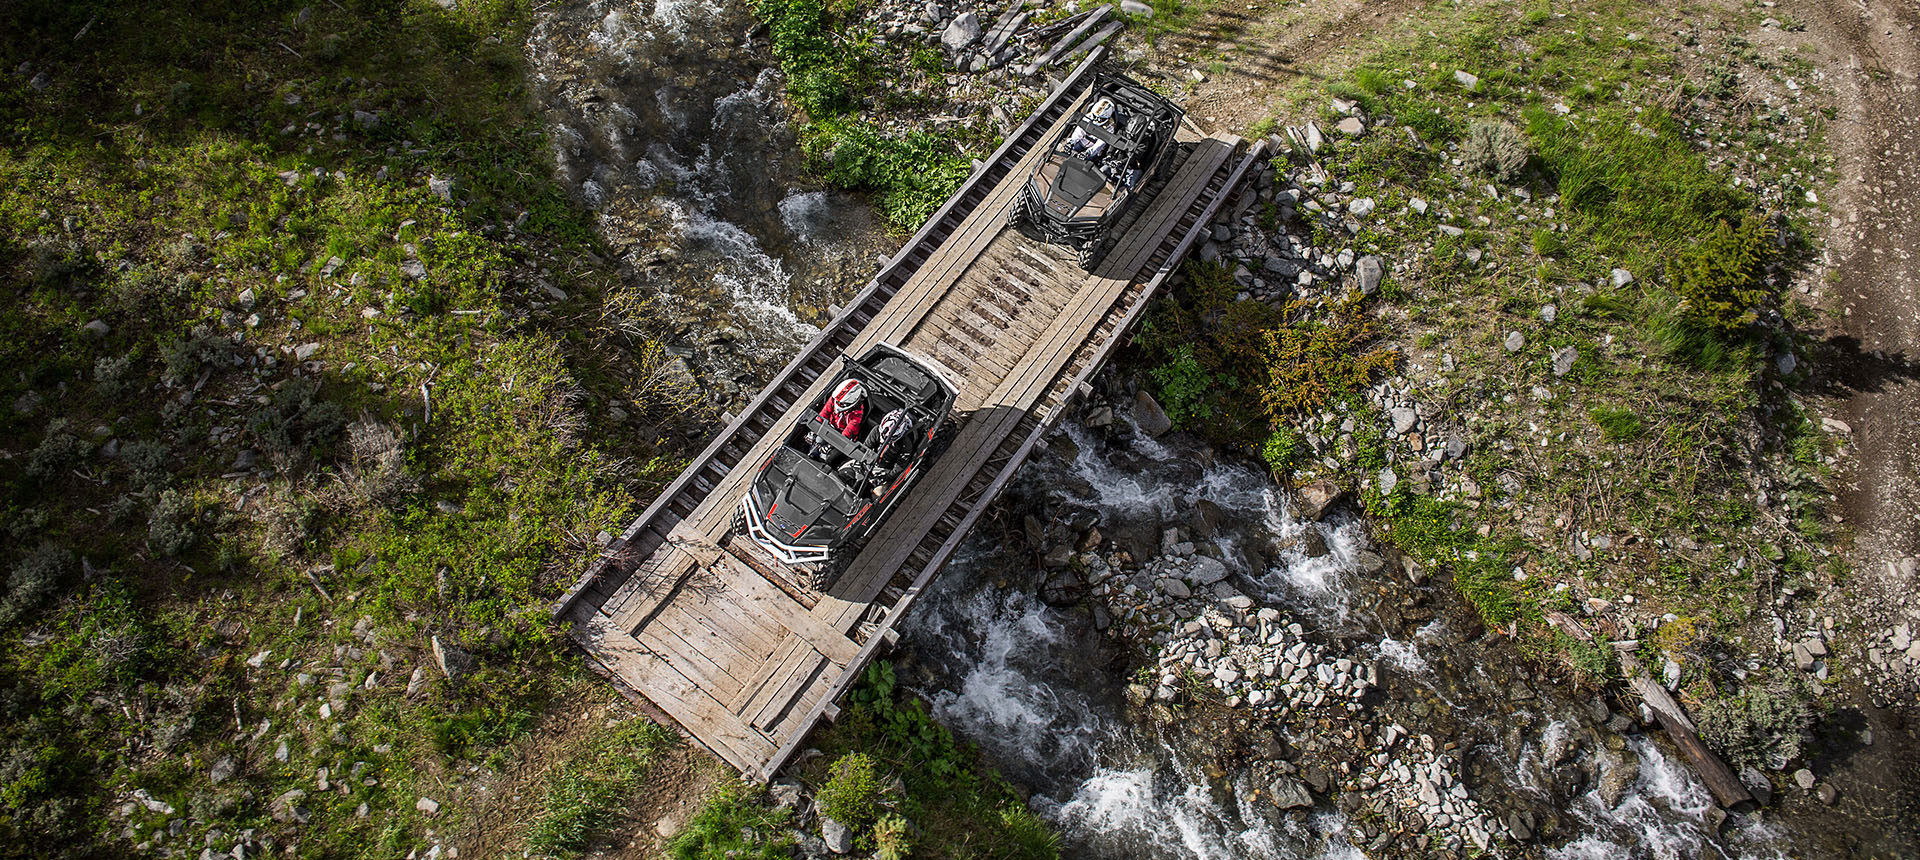 2020 RZR<sup>®</sup> Trail 900 Instagram image 2